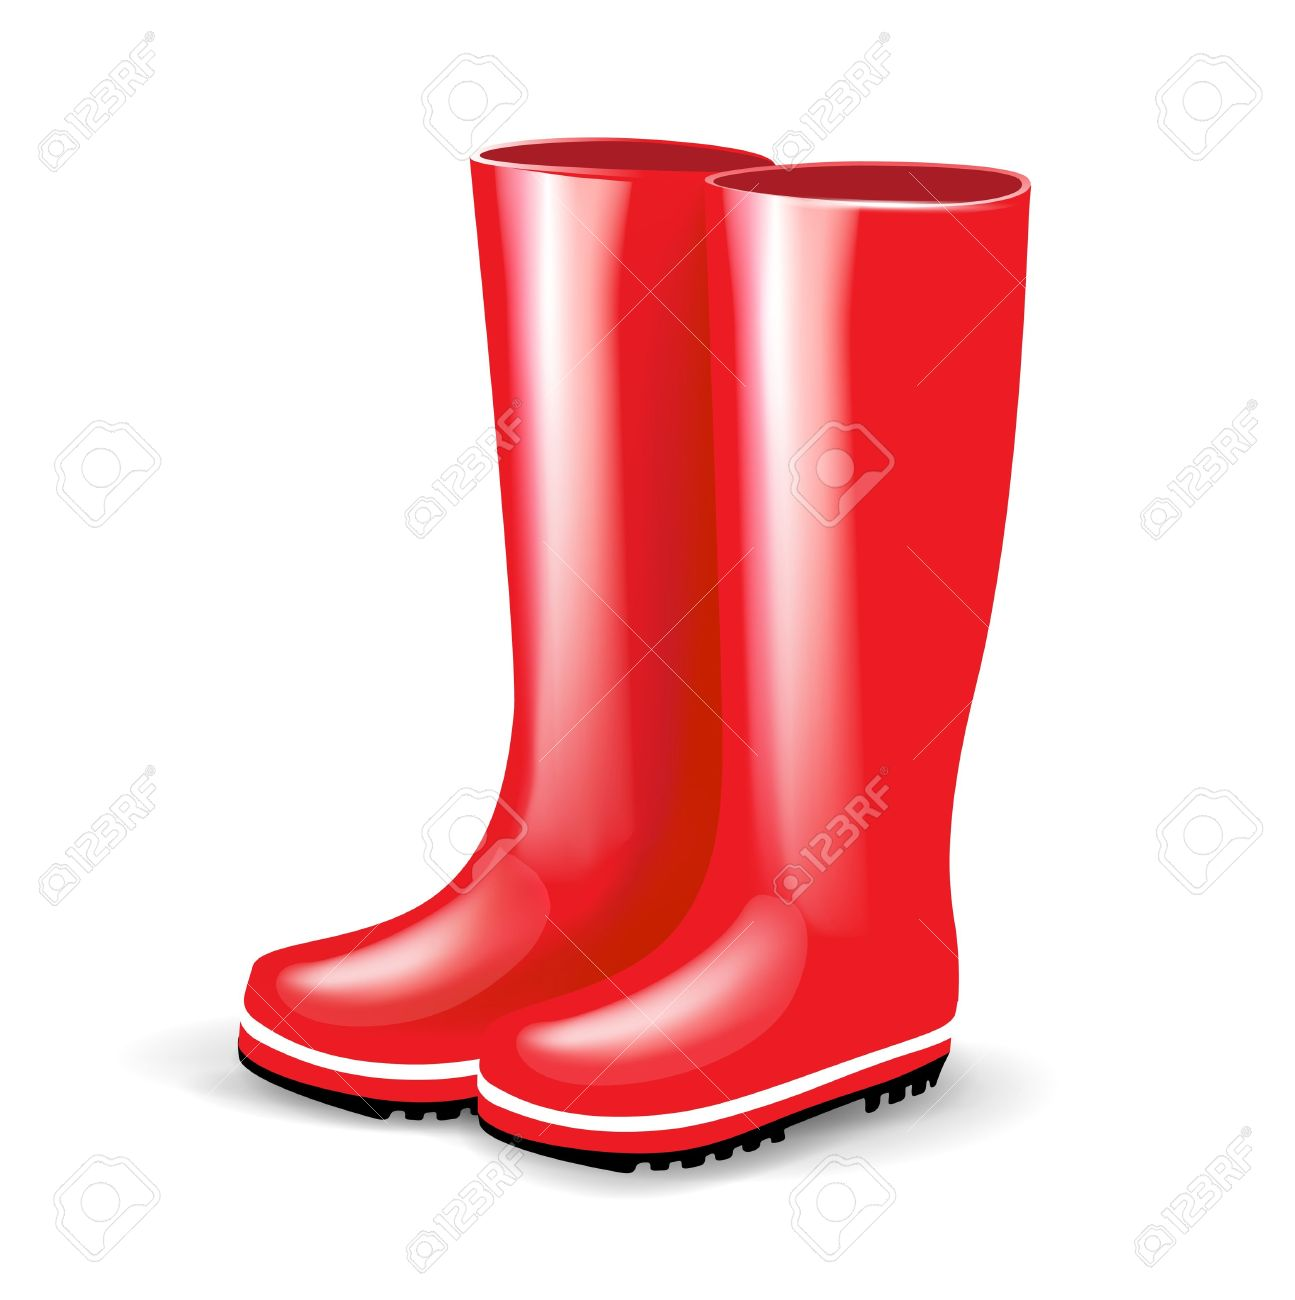 Red Rain Boots Clipart Red boots clipart - Cl...